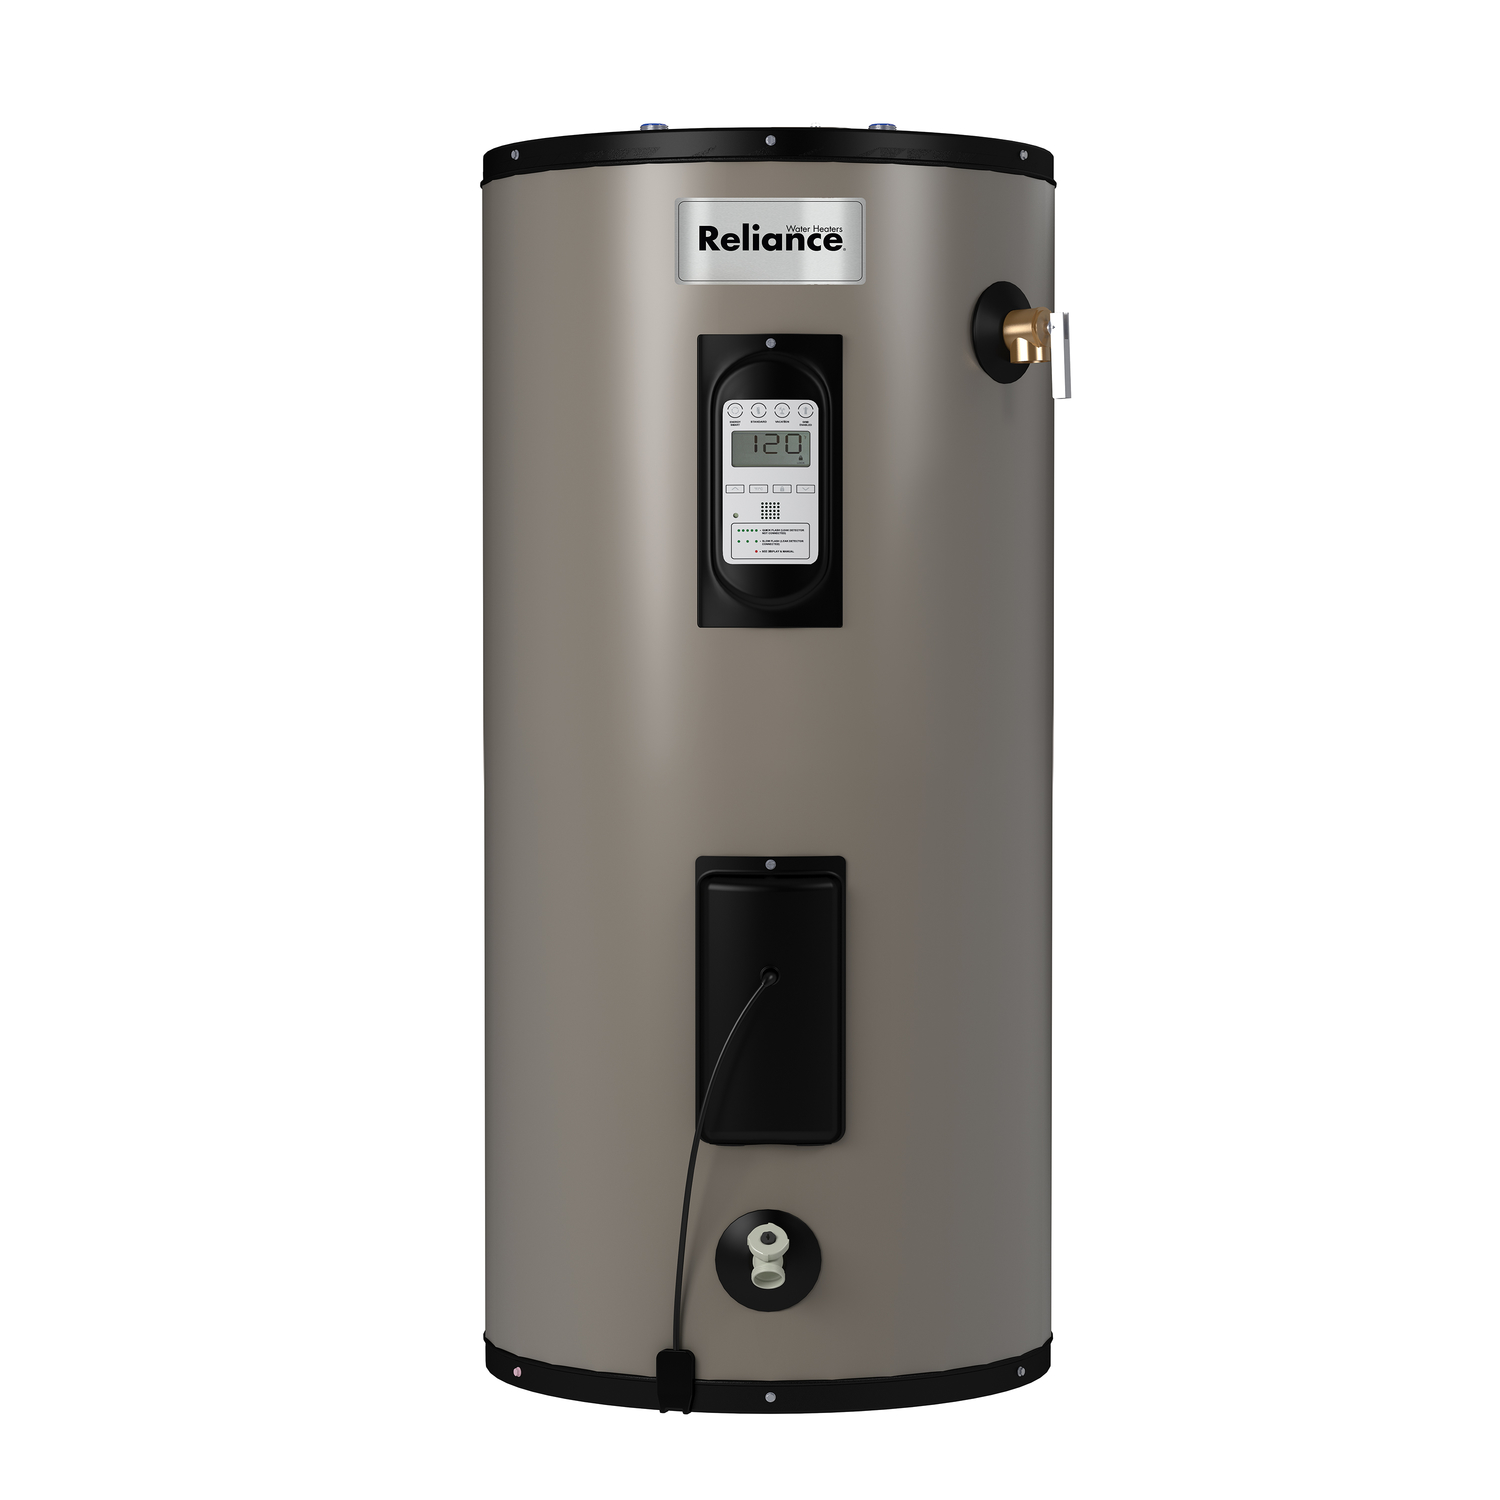 Reliance  Electric  Water Heater  50 in. H x 20-1/2 in. L x 20-1/2 in. W 40 gal.